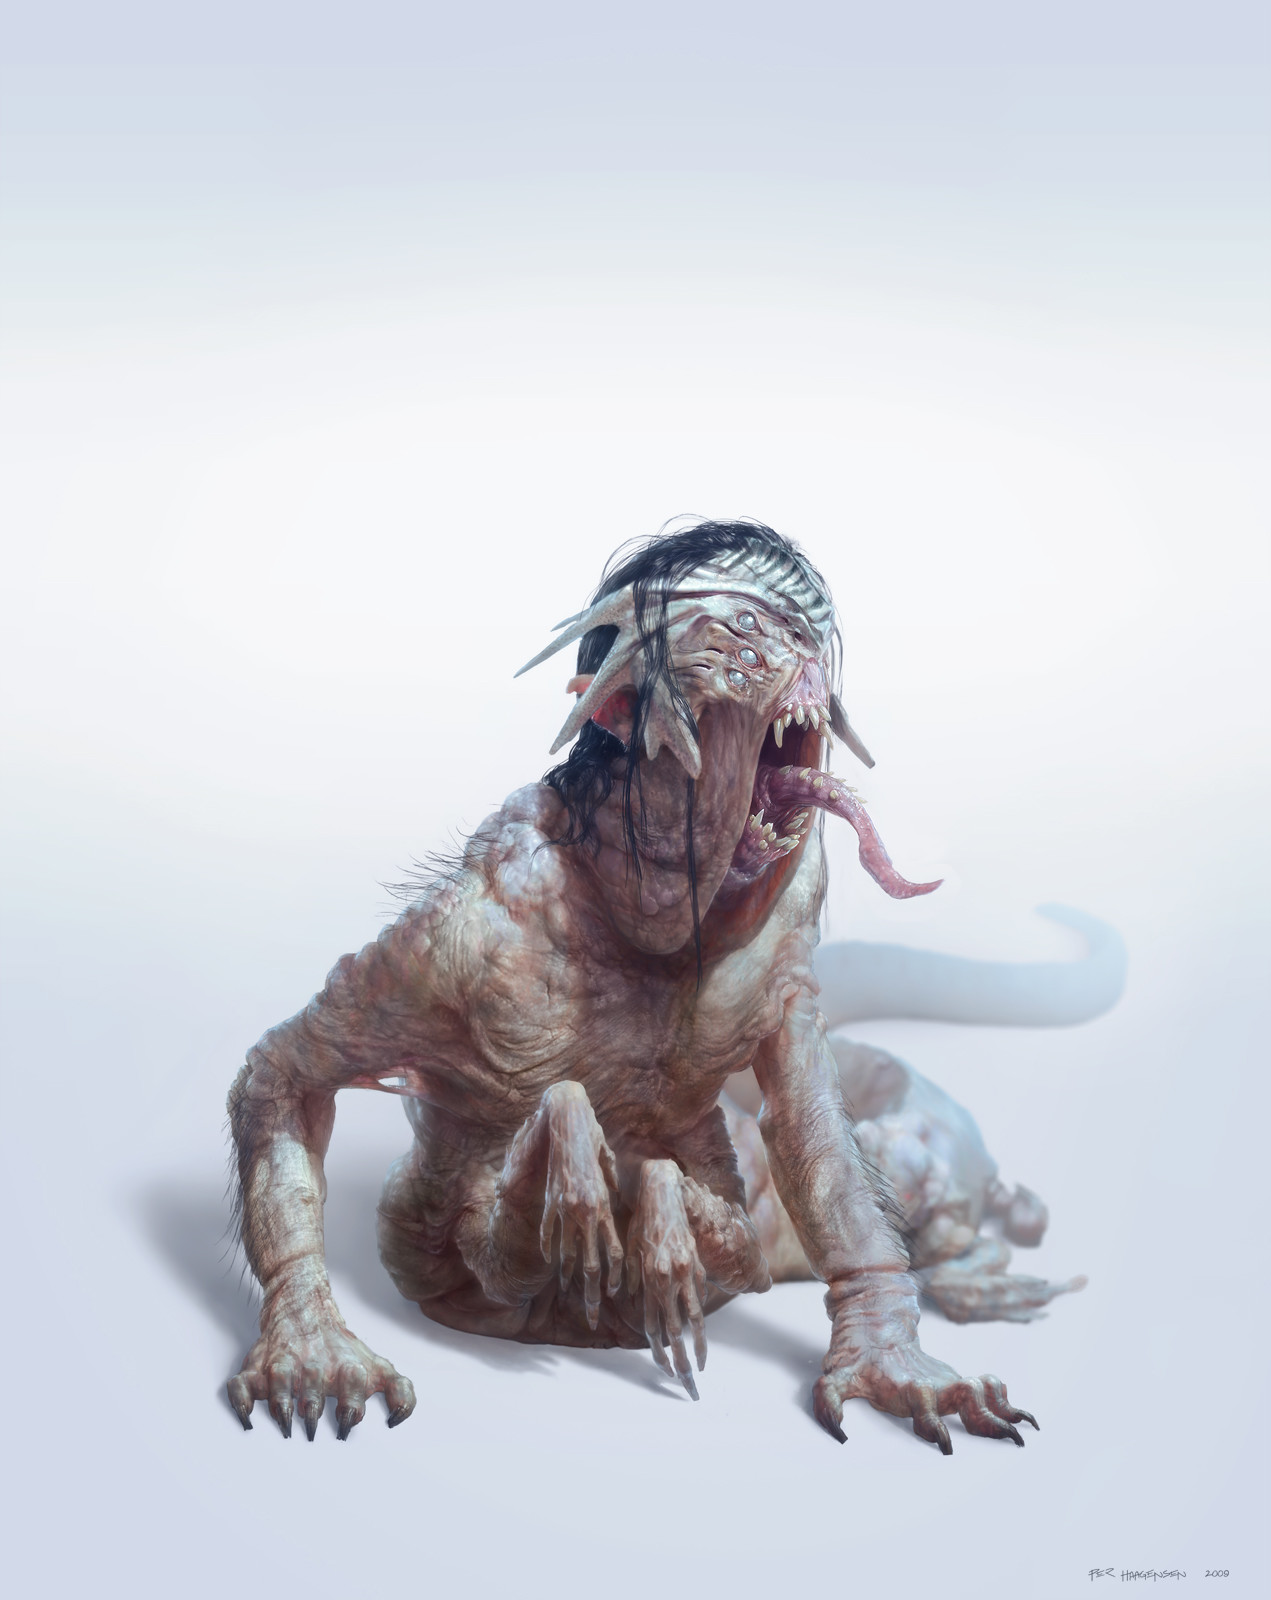 Per haagensen the corrupted boss monster concept 2k w sign